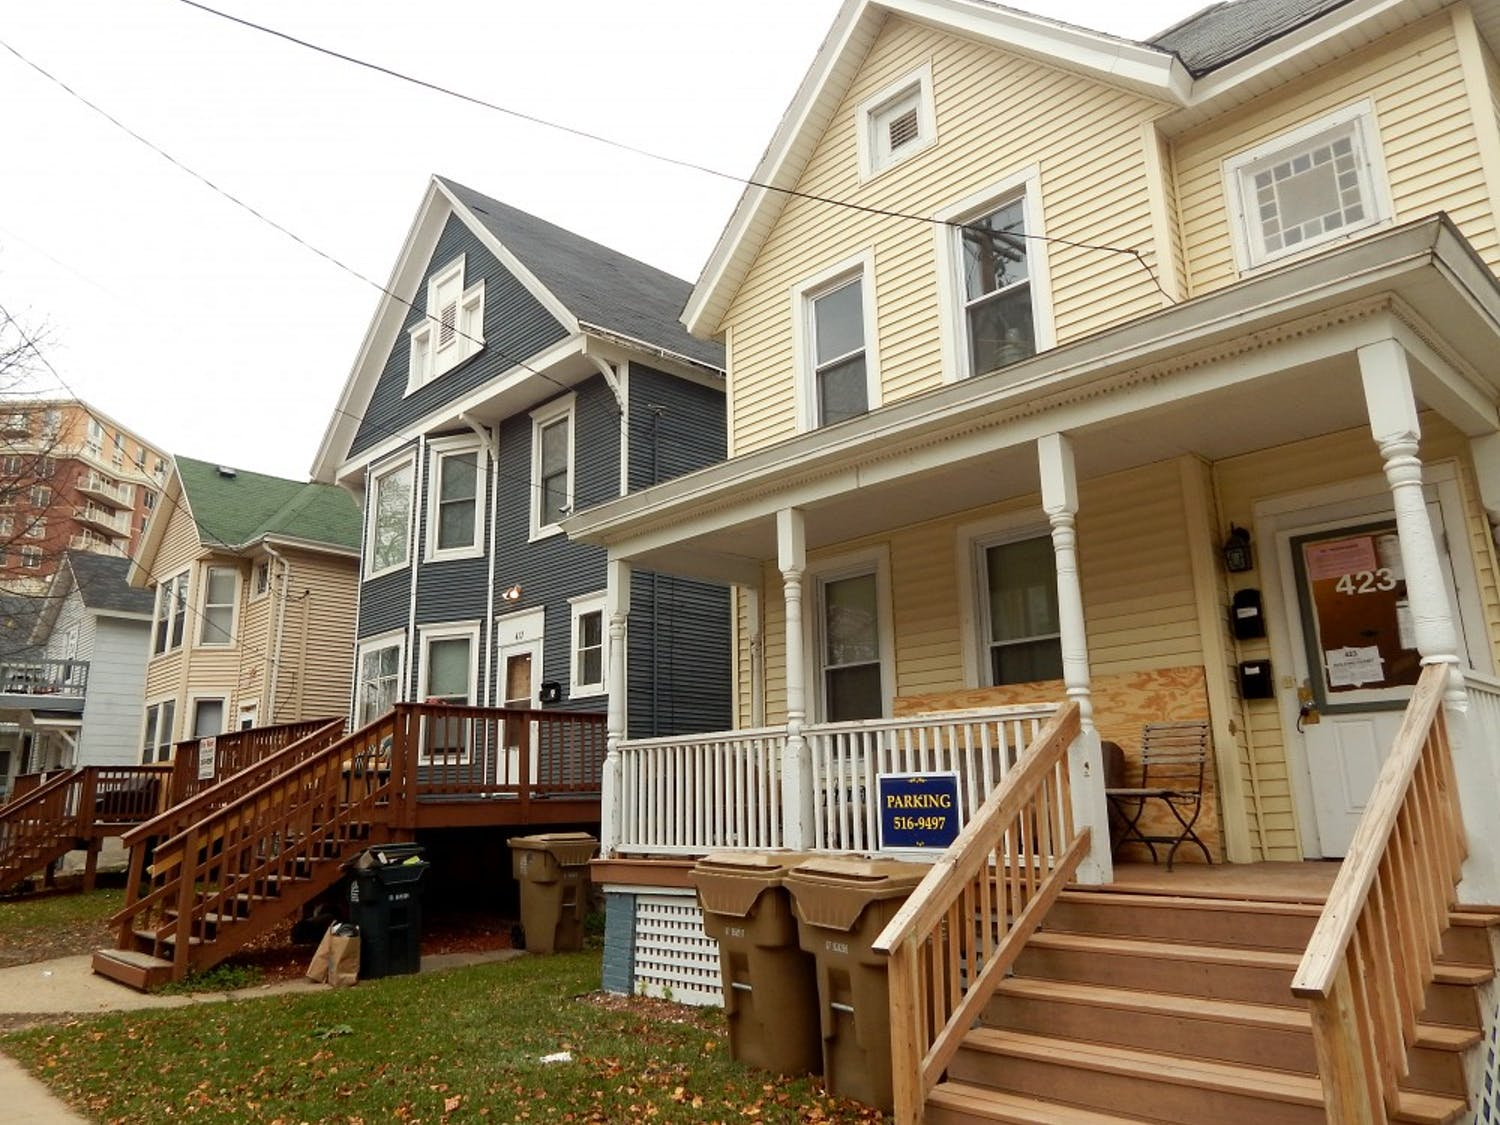 Prices and sales of homes in Madison increased in 2015, and are expected to keep climbing in 2016.